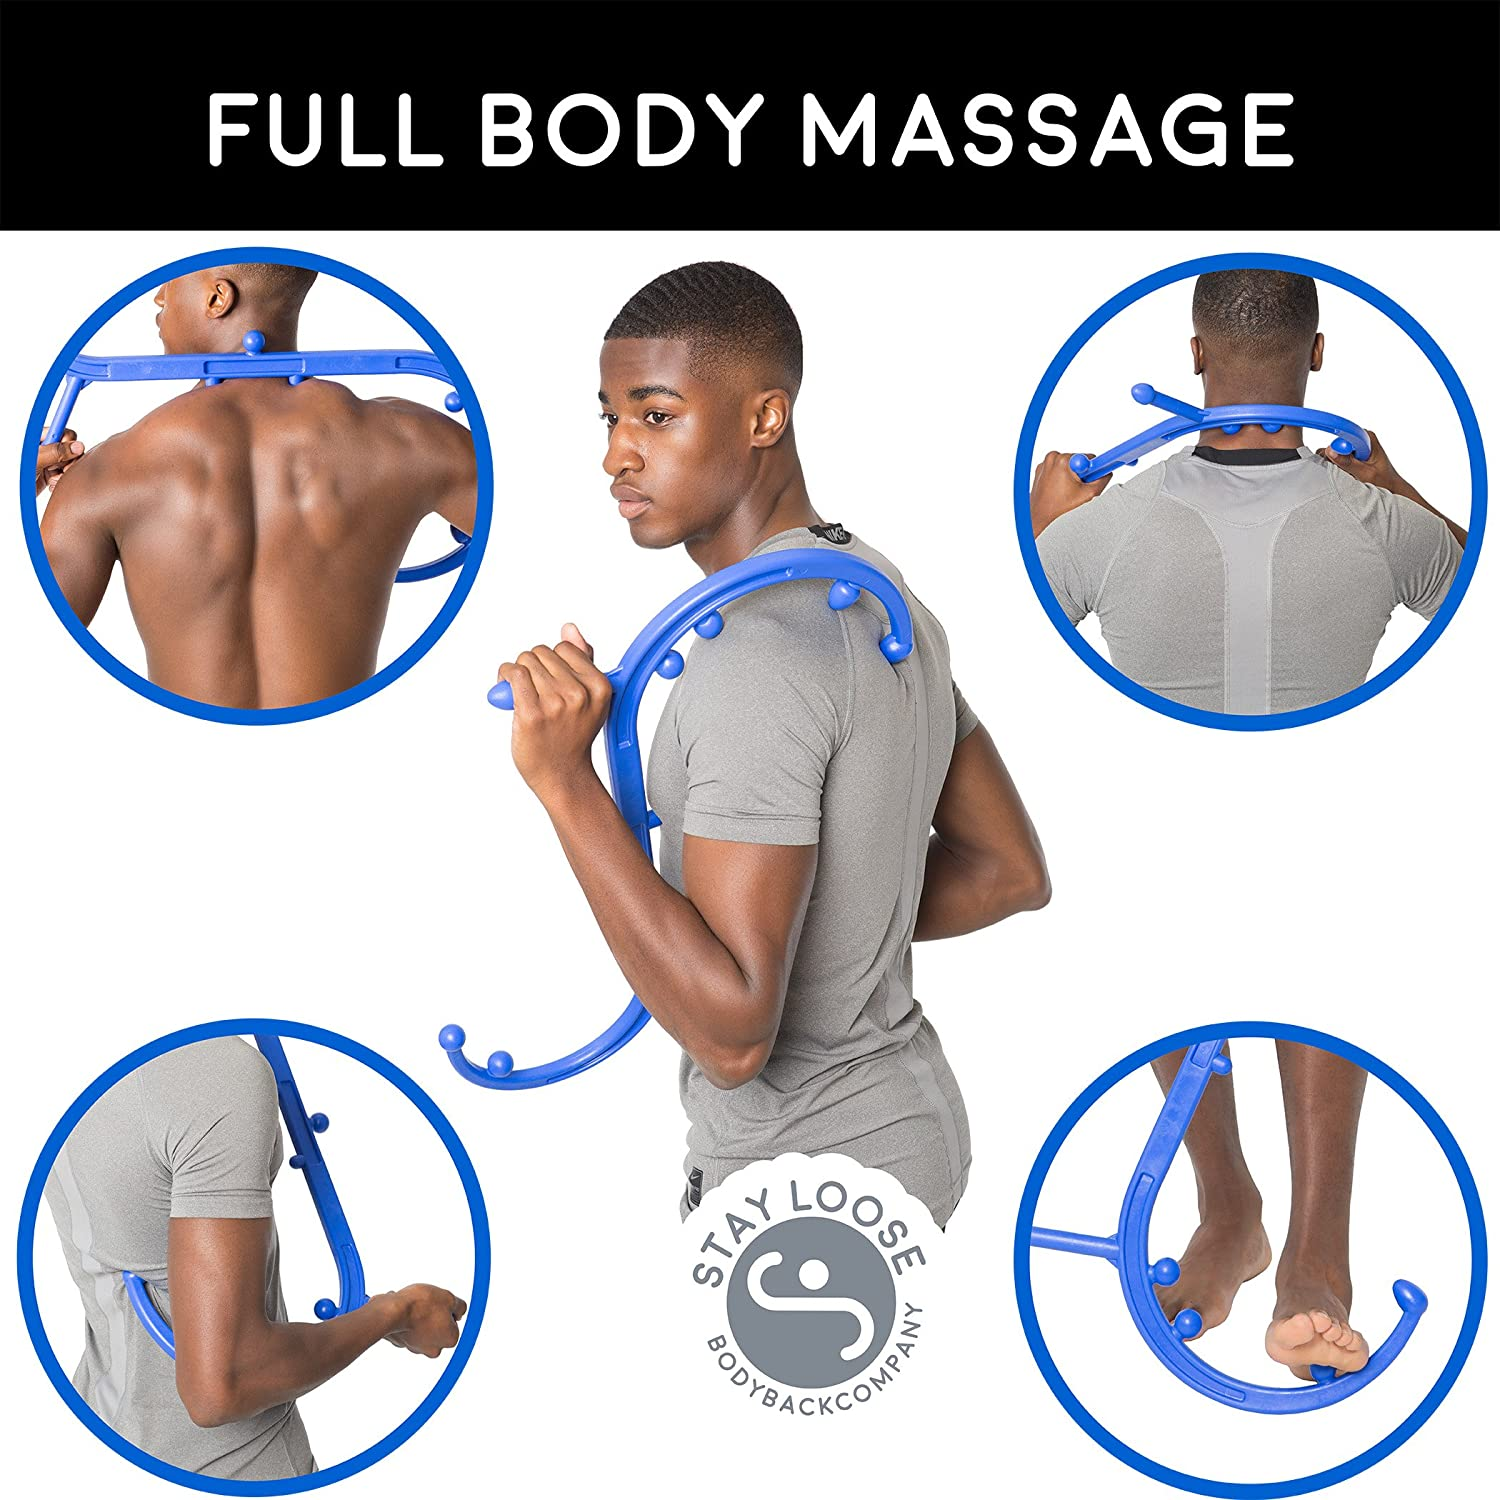 Body Back Buddy Self Massage Tool - Back, Neck, Shoulder, Leg & Feet  Trigger Point Therapy & Deep Tissue Massager by Body Back Company  (Full-sized Blue): ...